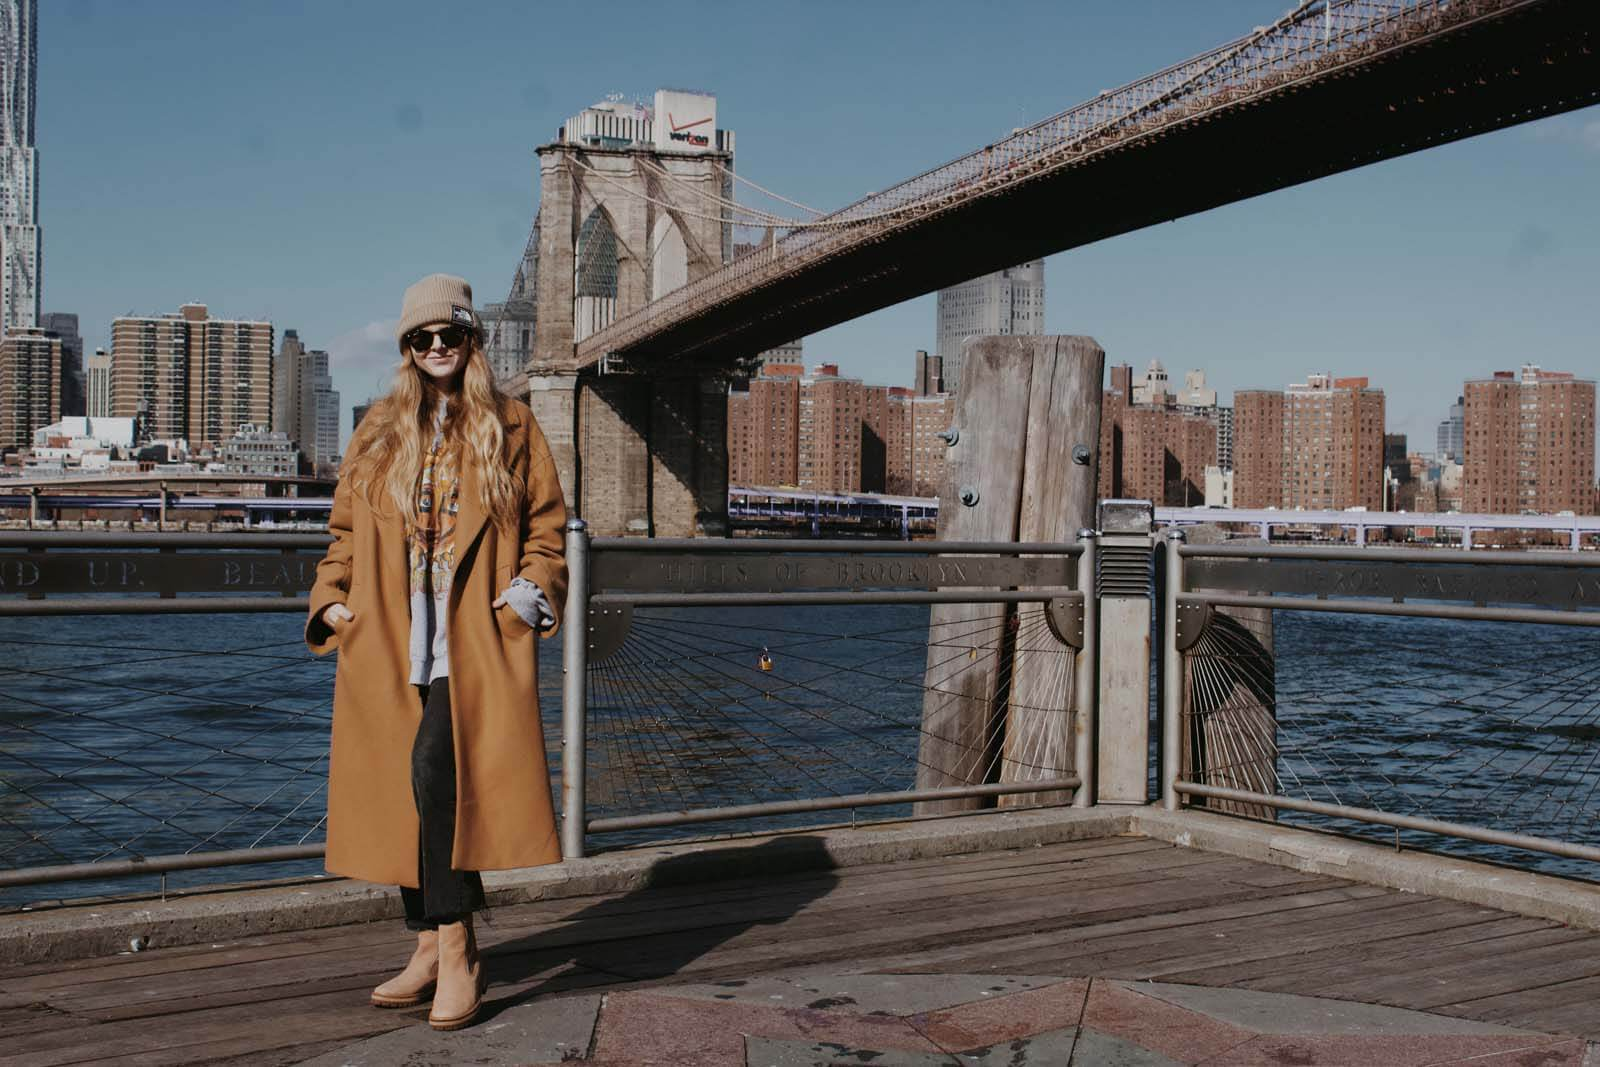 Katie in DUMBO Brooklyn by Katie Hinkle